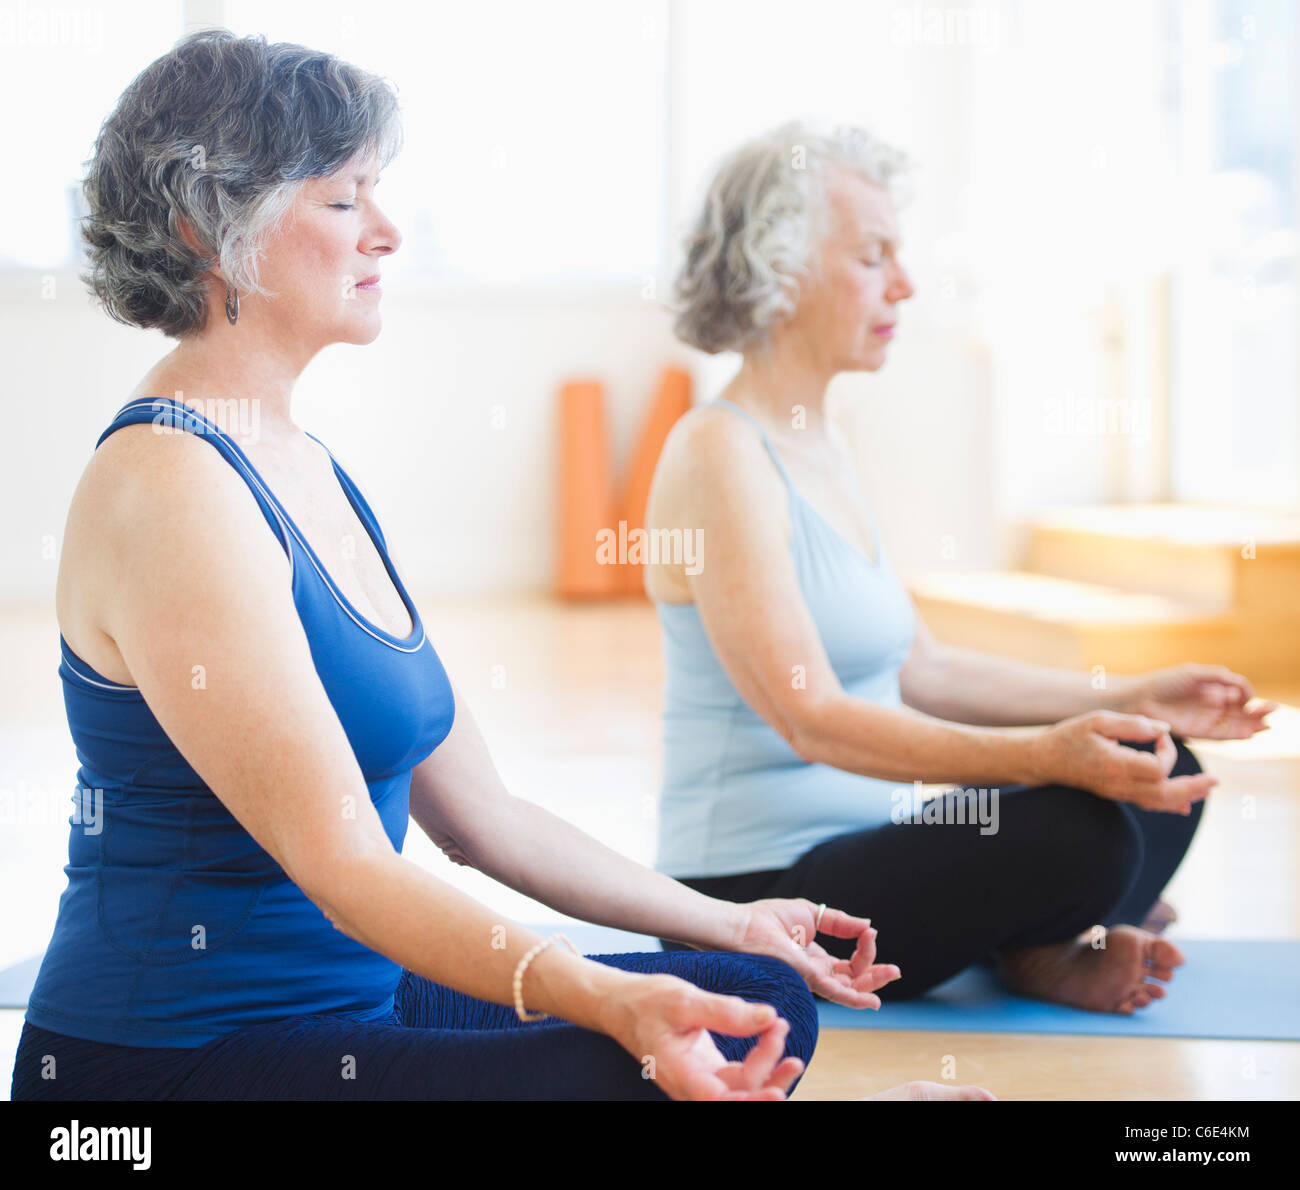 USA, New Jersey, Jersey City, deux femmes qui pratiquent le yoga Photo Stock